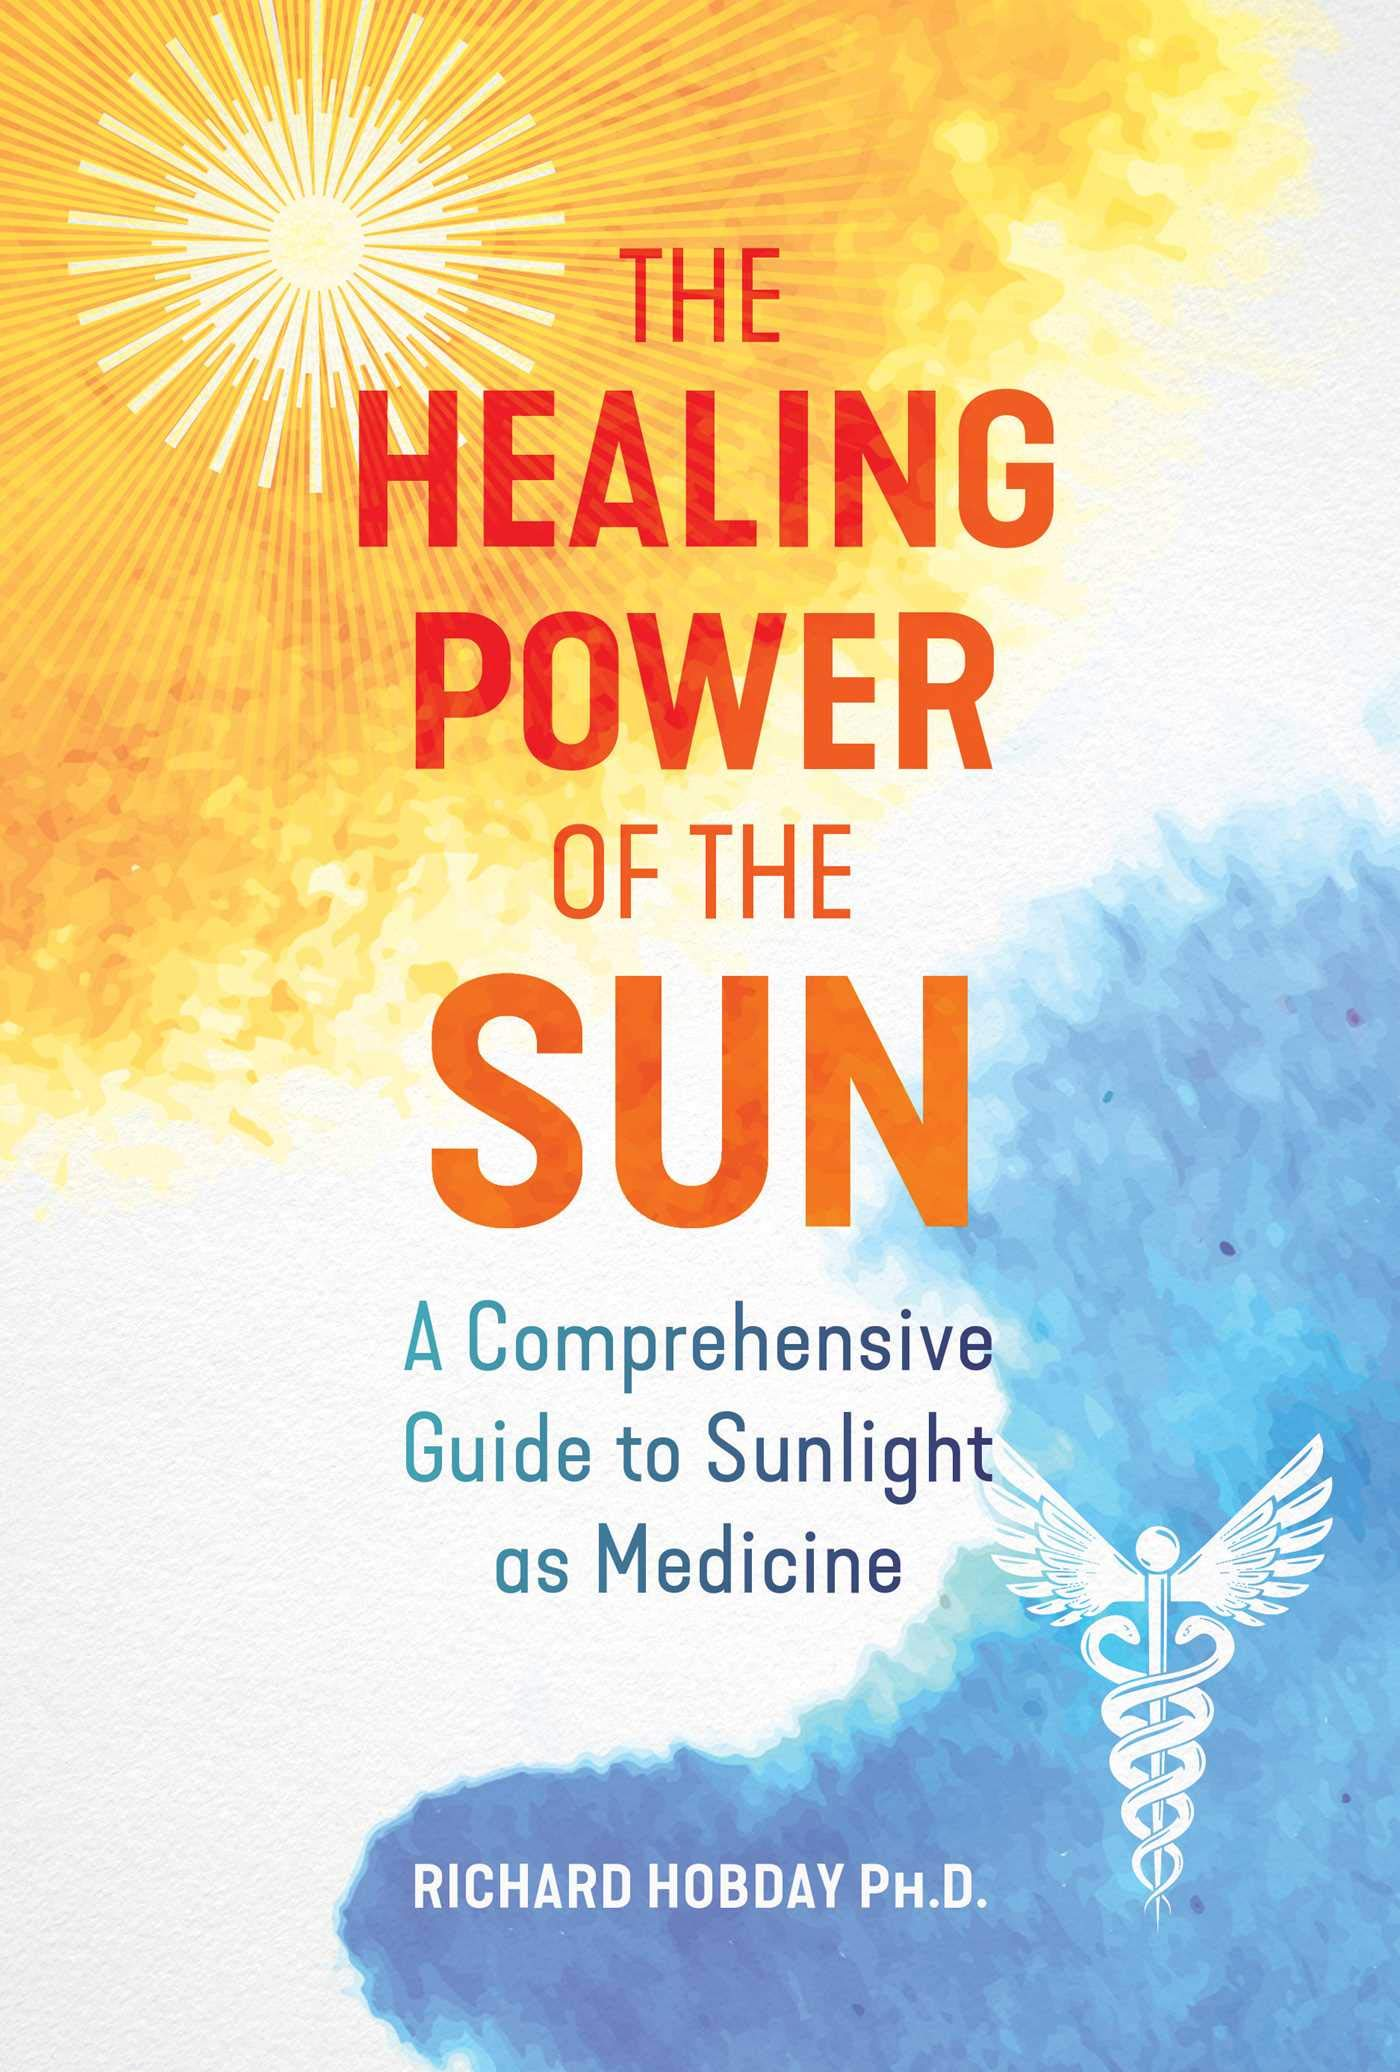 The Healing Power of the Sun: A Comprehensive Guide to Sunlight as Medicine: Hobday, Richard: 9781644114025: Amazon.com: Books